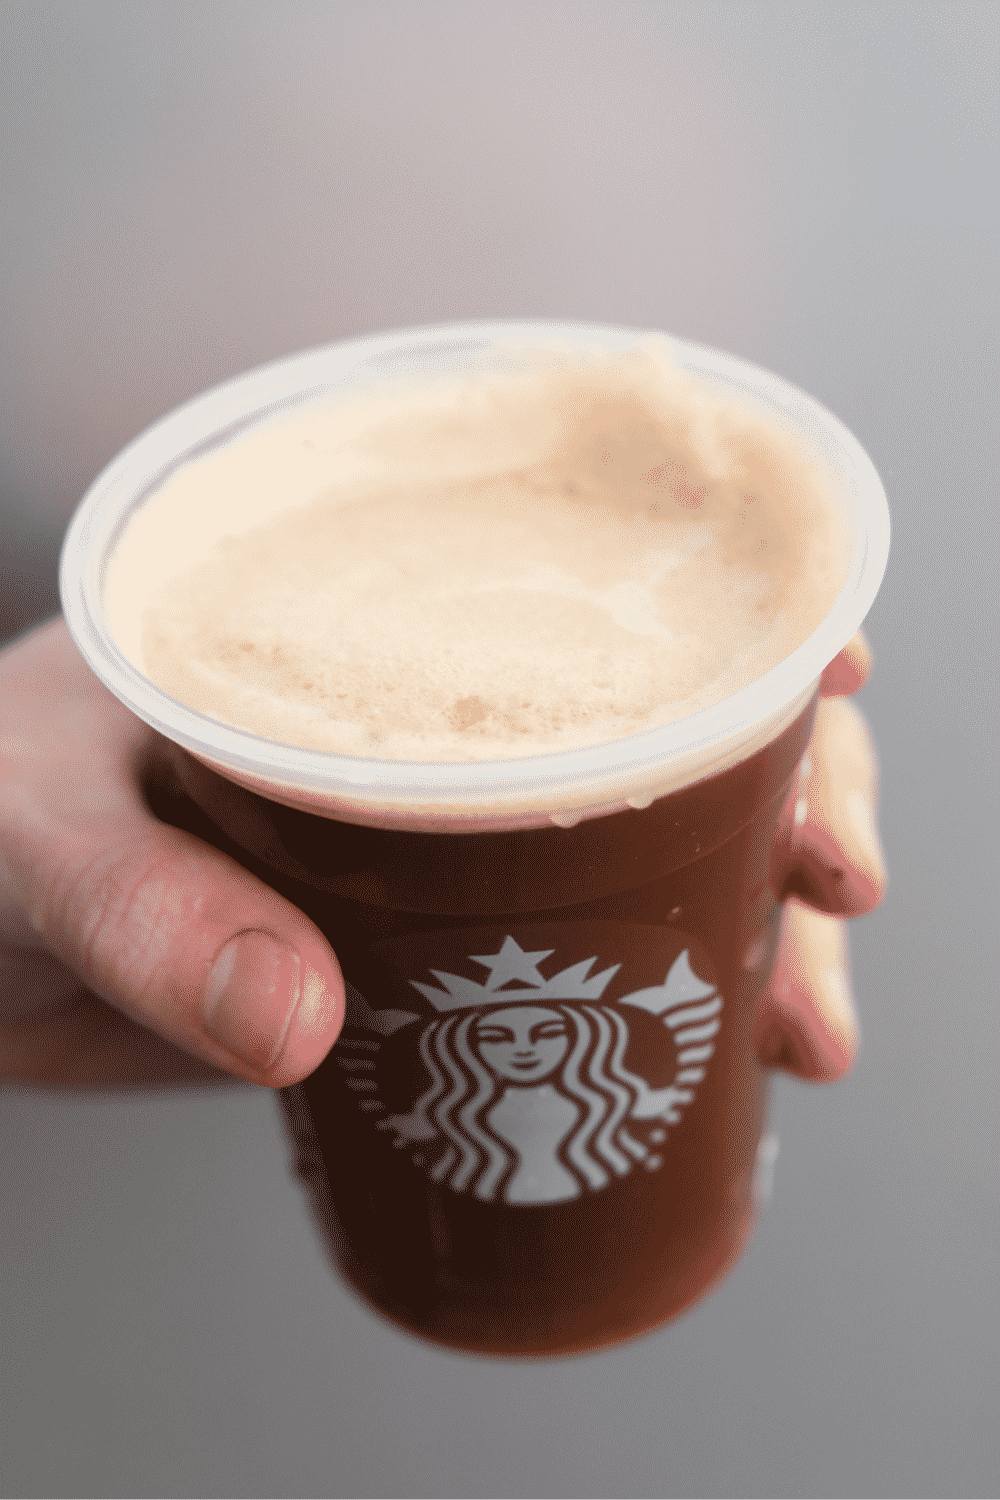 Hand holding a cup of Starbucks iced nitro cold brew.